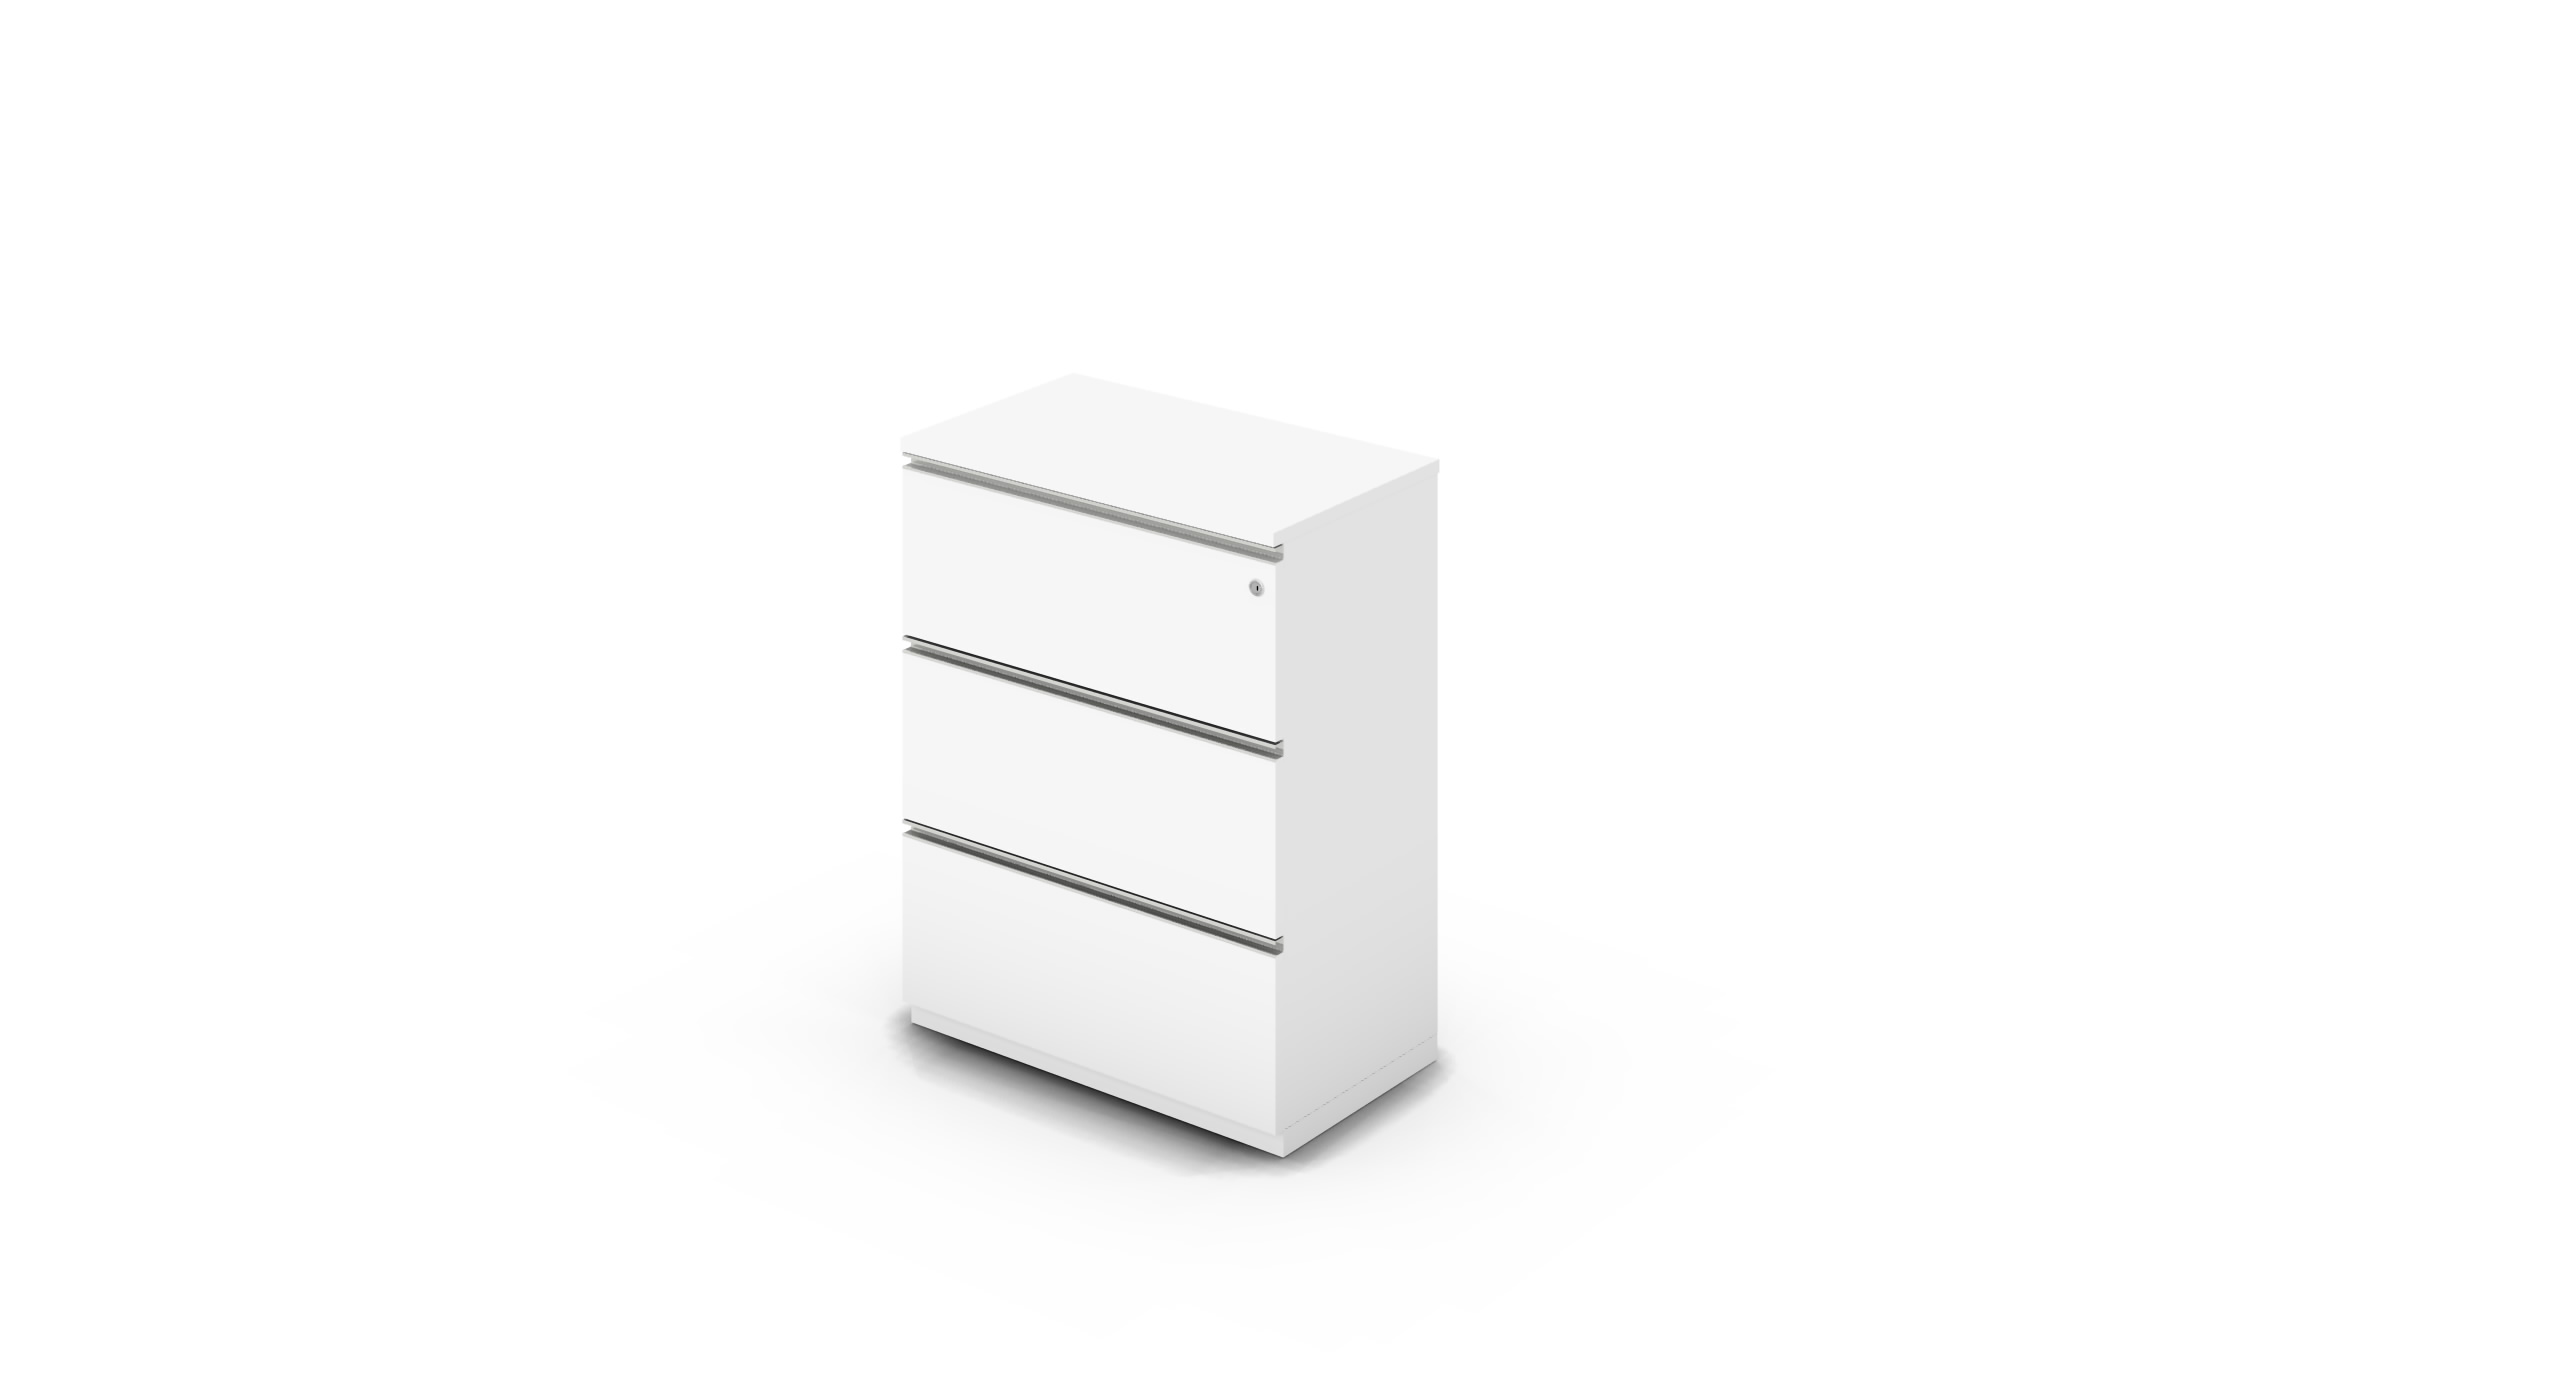 Cabinet_800x450x1125_DR_White_Rail_WithCylinder